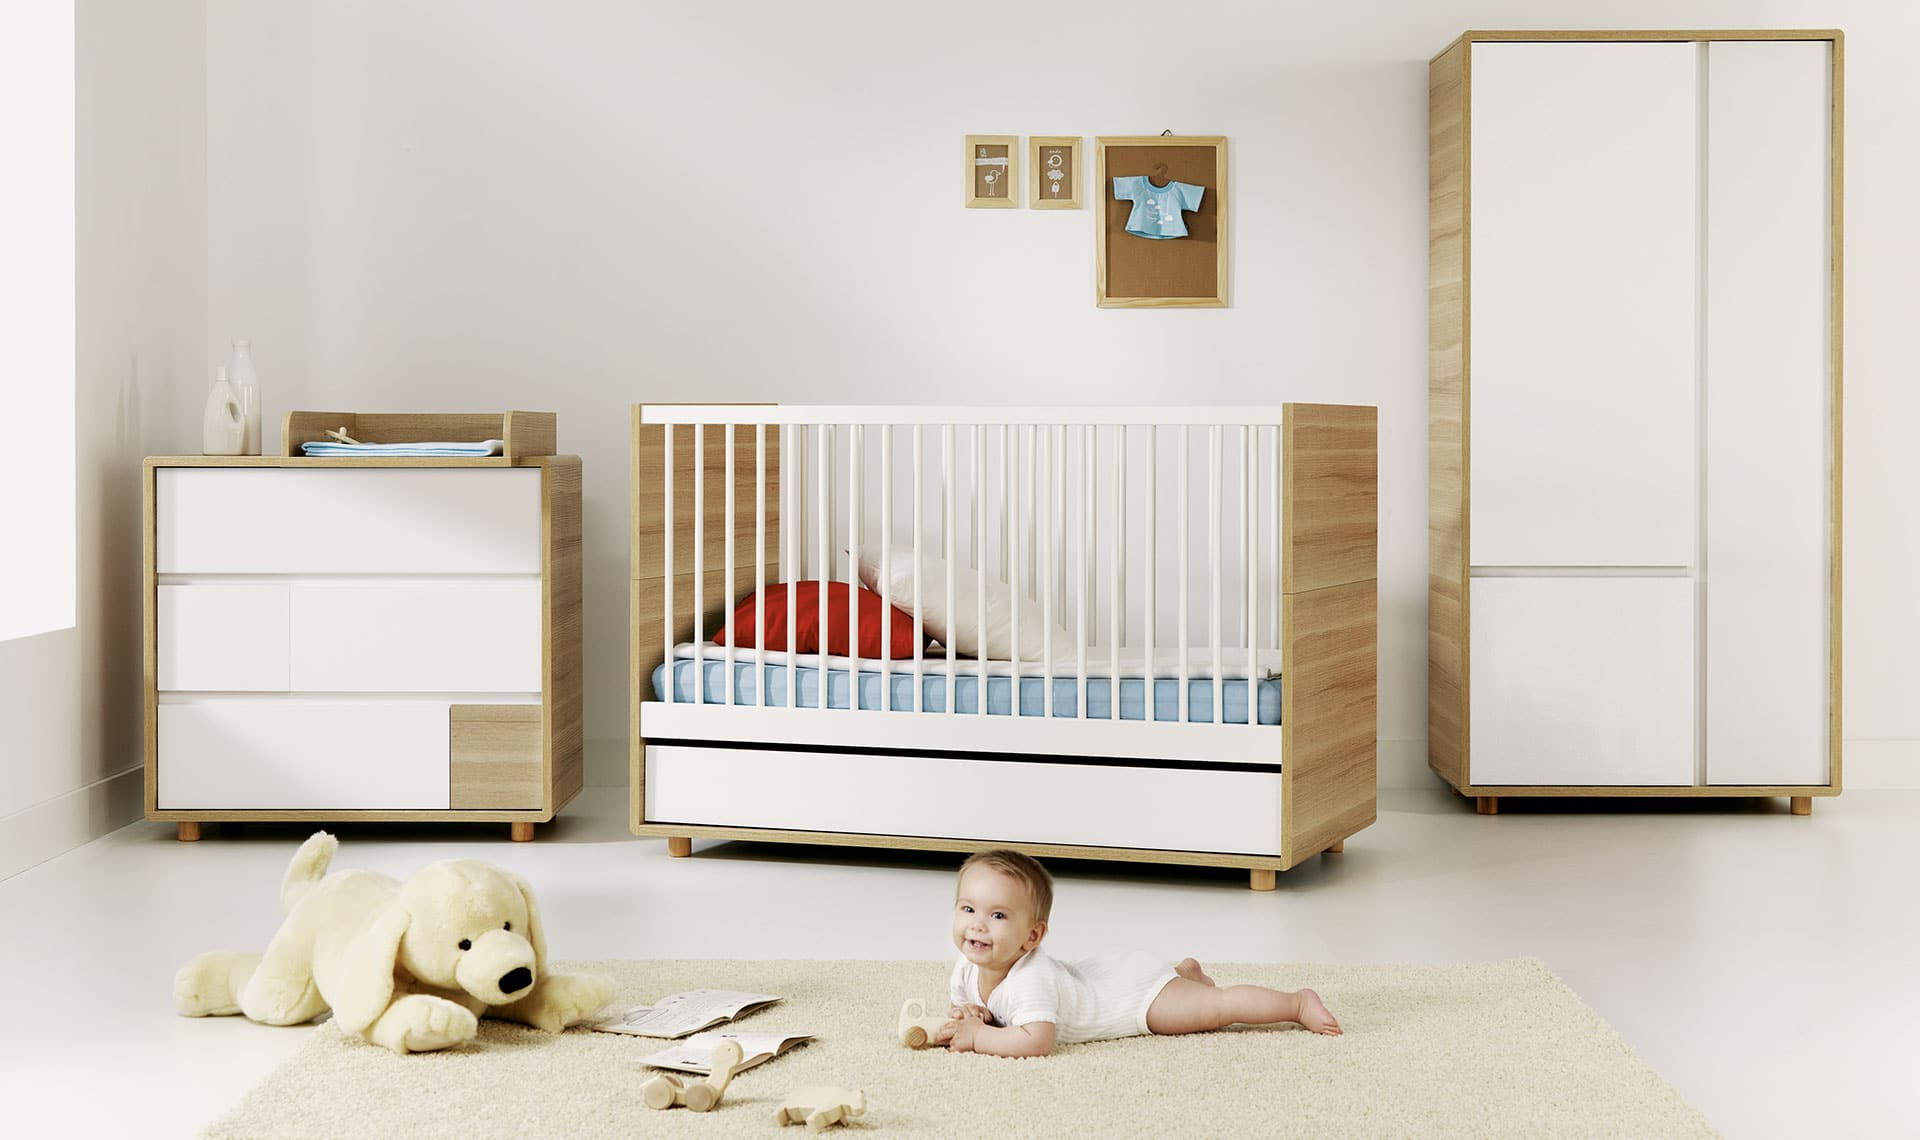 baby vox evolve 3 meubles lit 140x70 avec tiroir. Black Bedroom Furniture Sets. Home Design Ideas